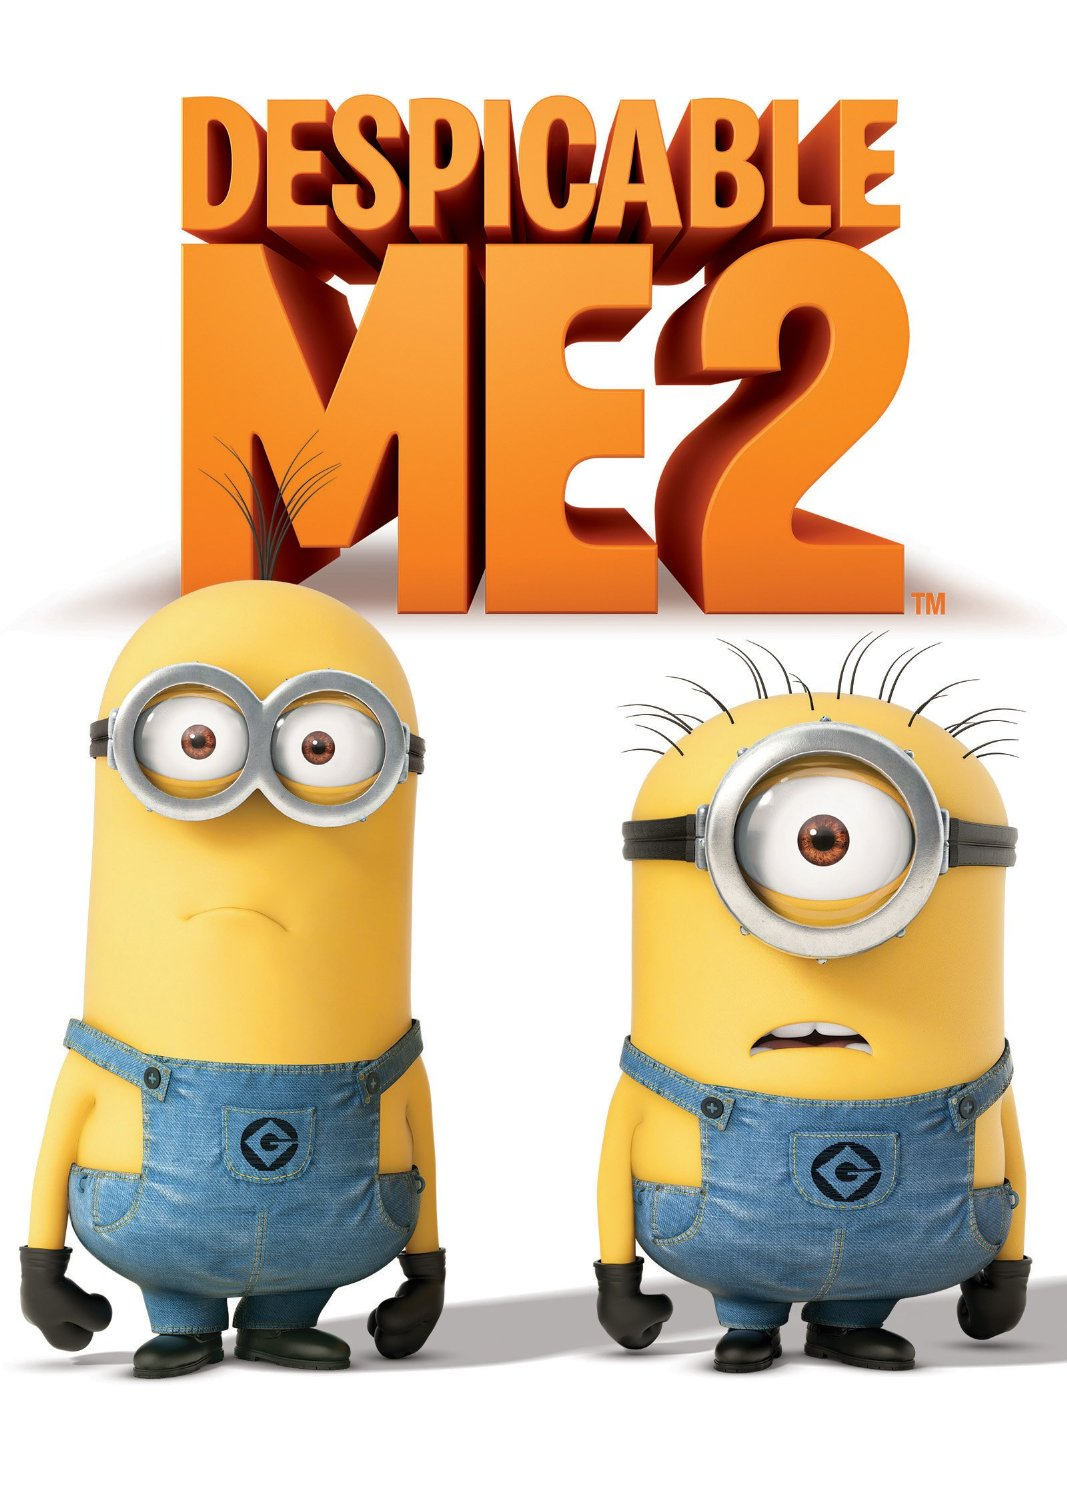 the movie despicable me